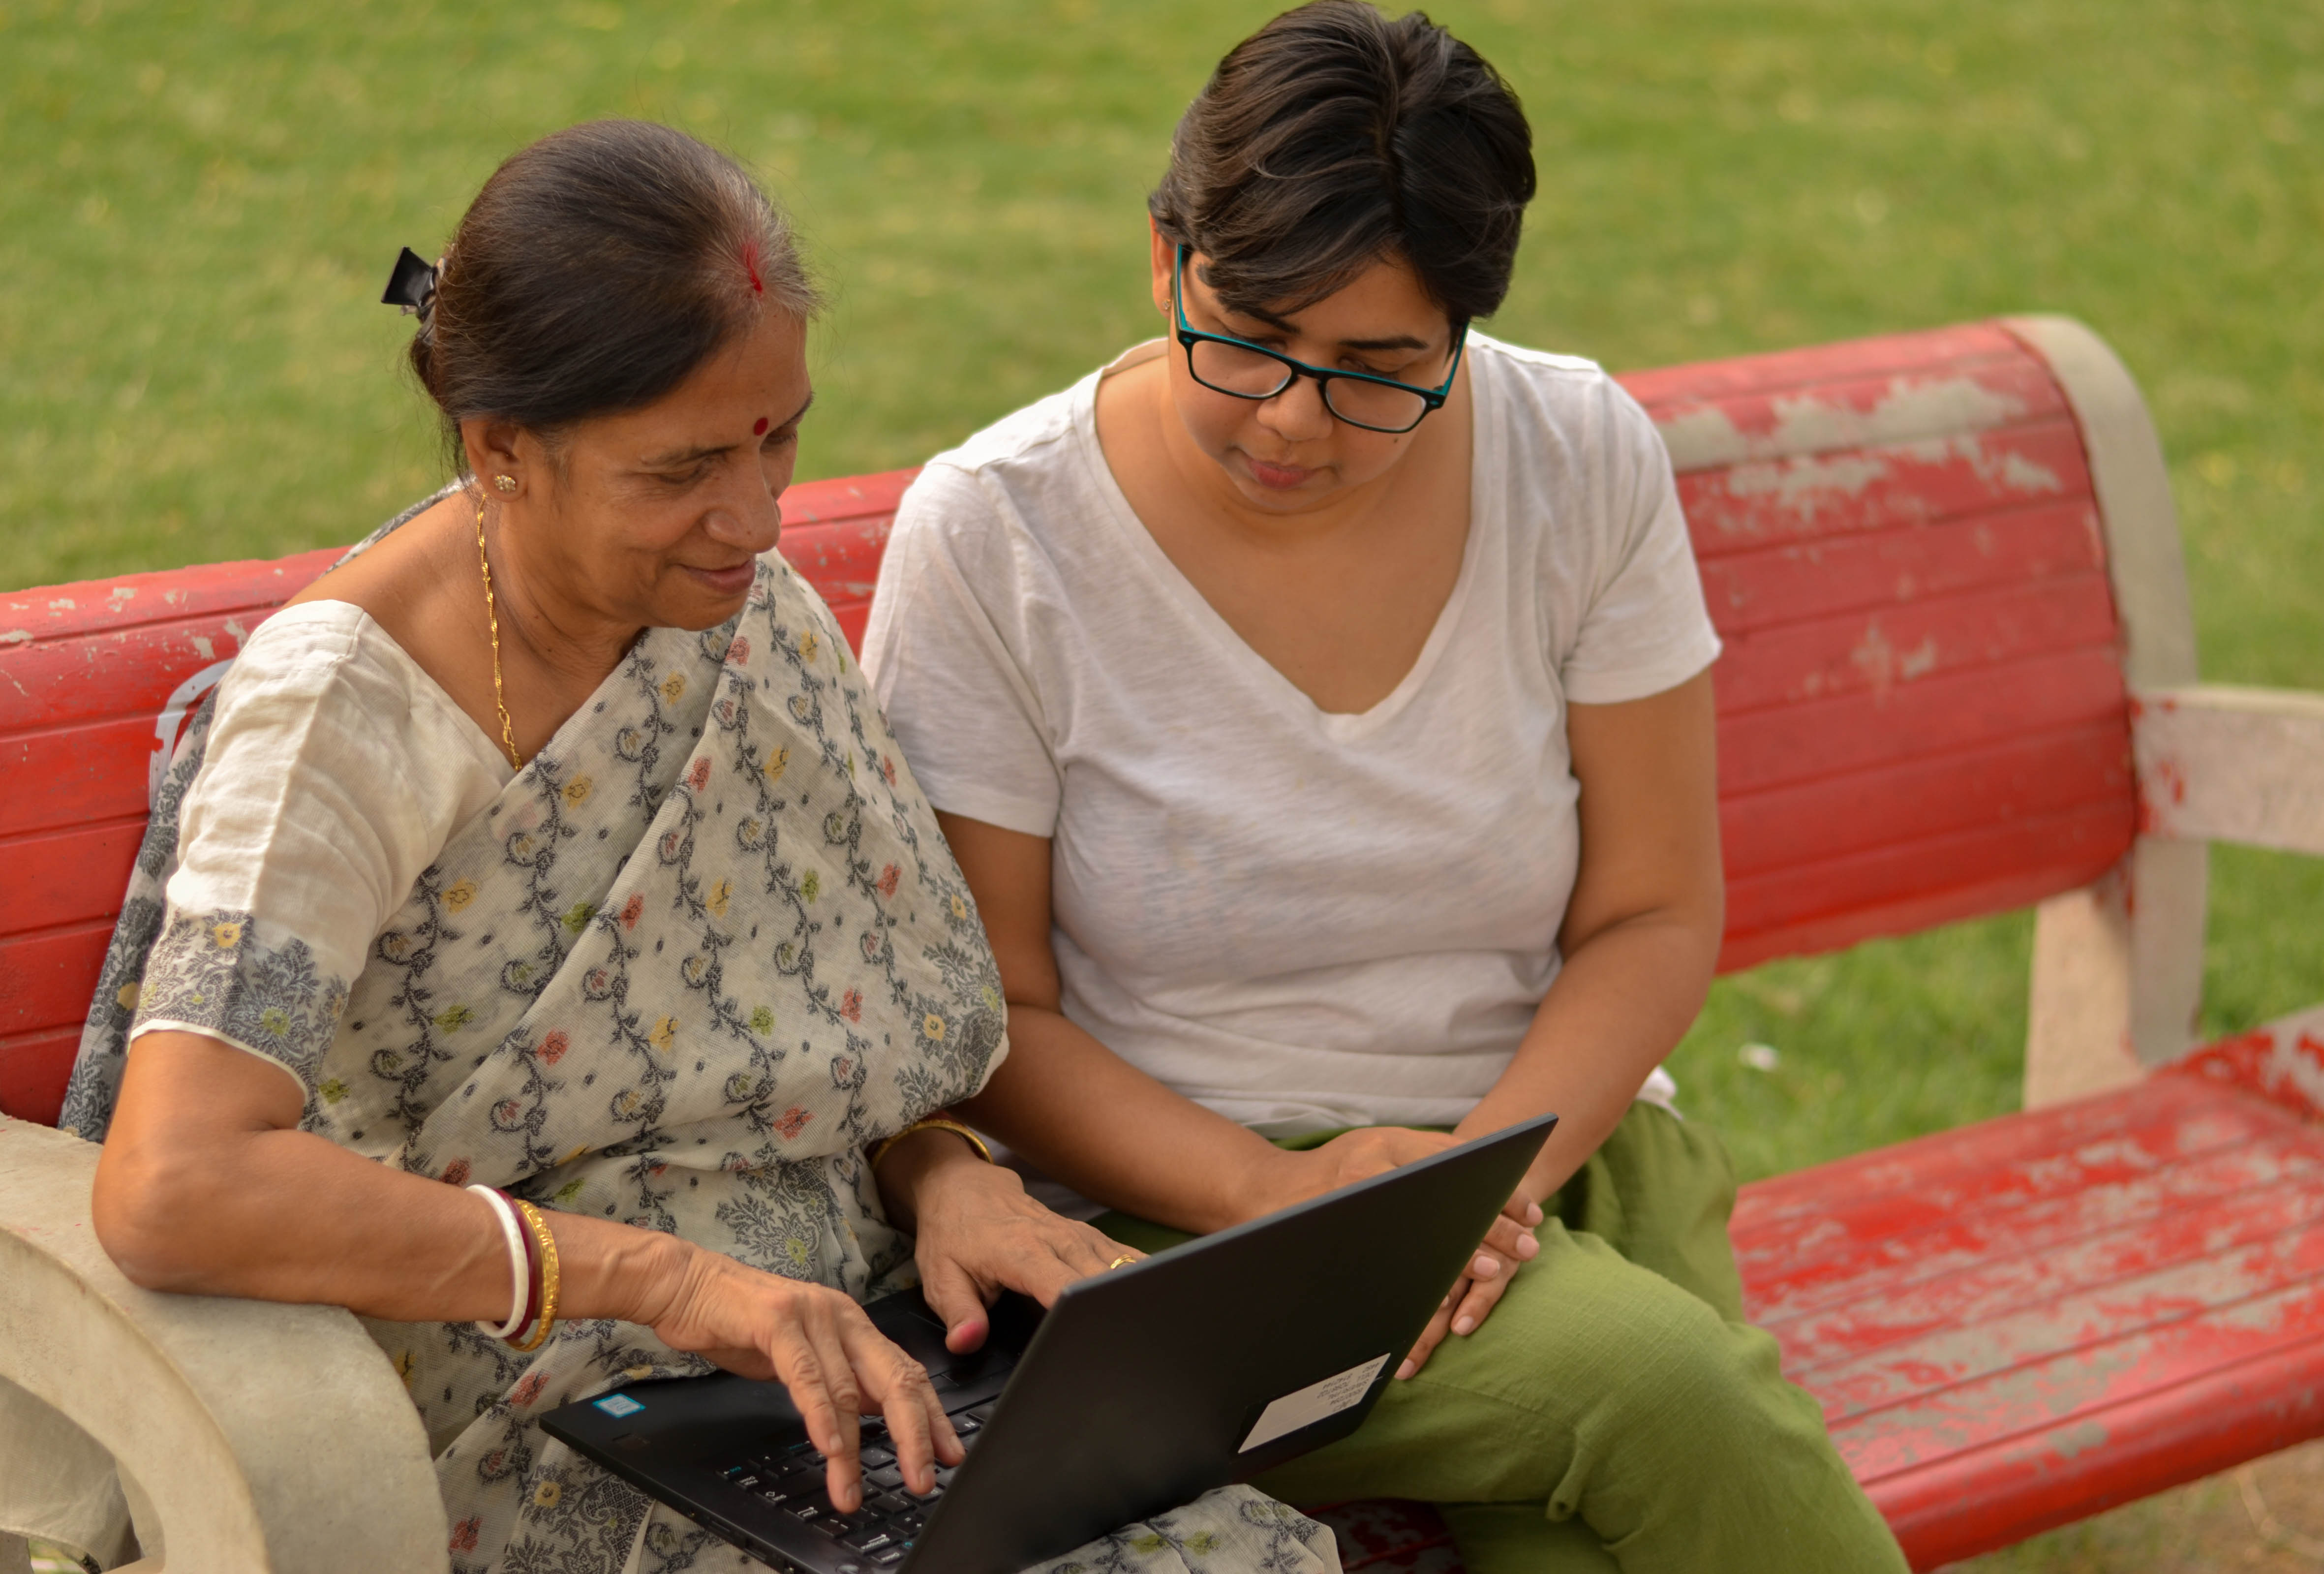 Young Indian girl helping an old Indian woman on a laptop